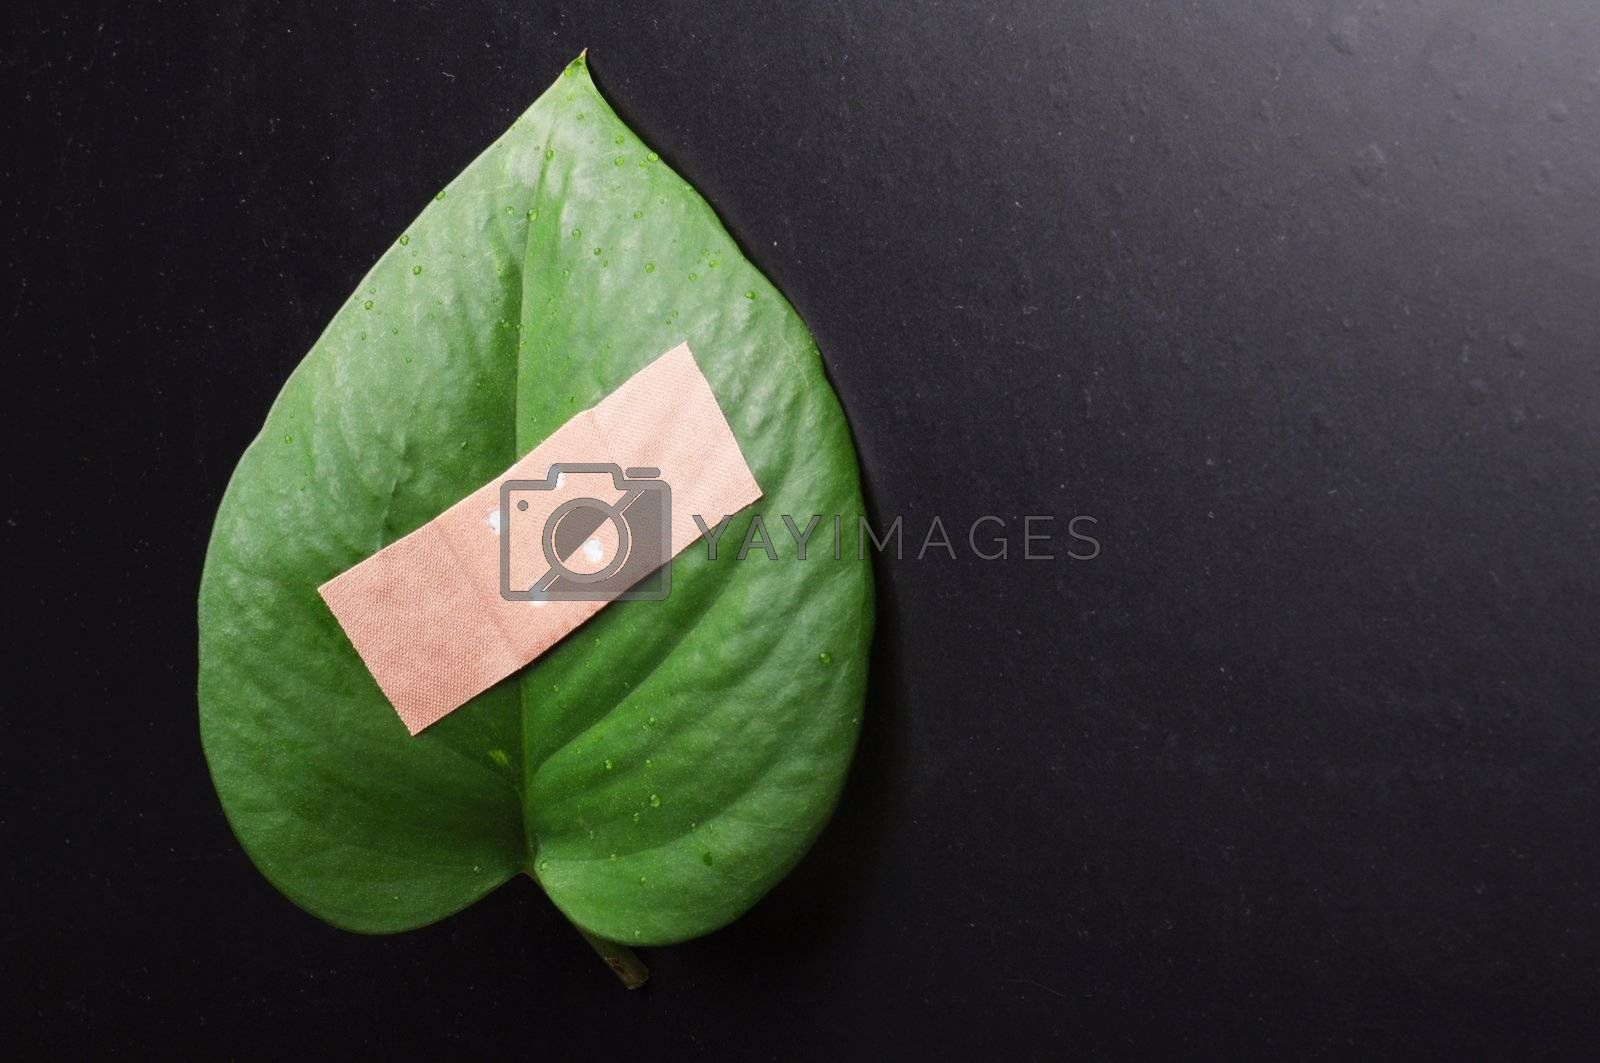 eco ecology or nature protection concept with leaf and band aid on black